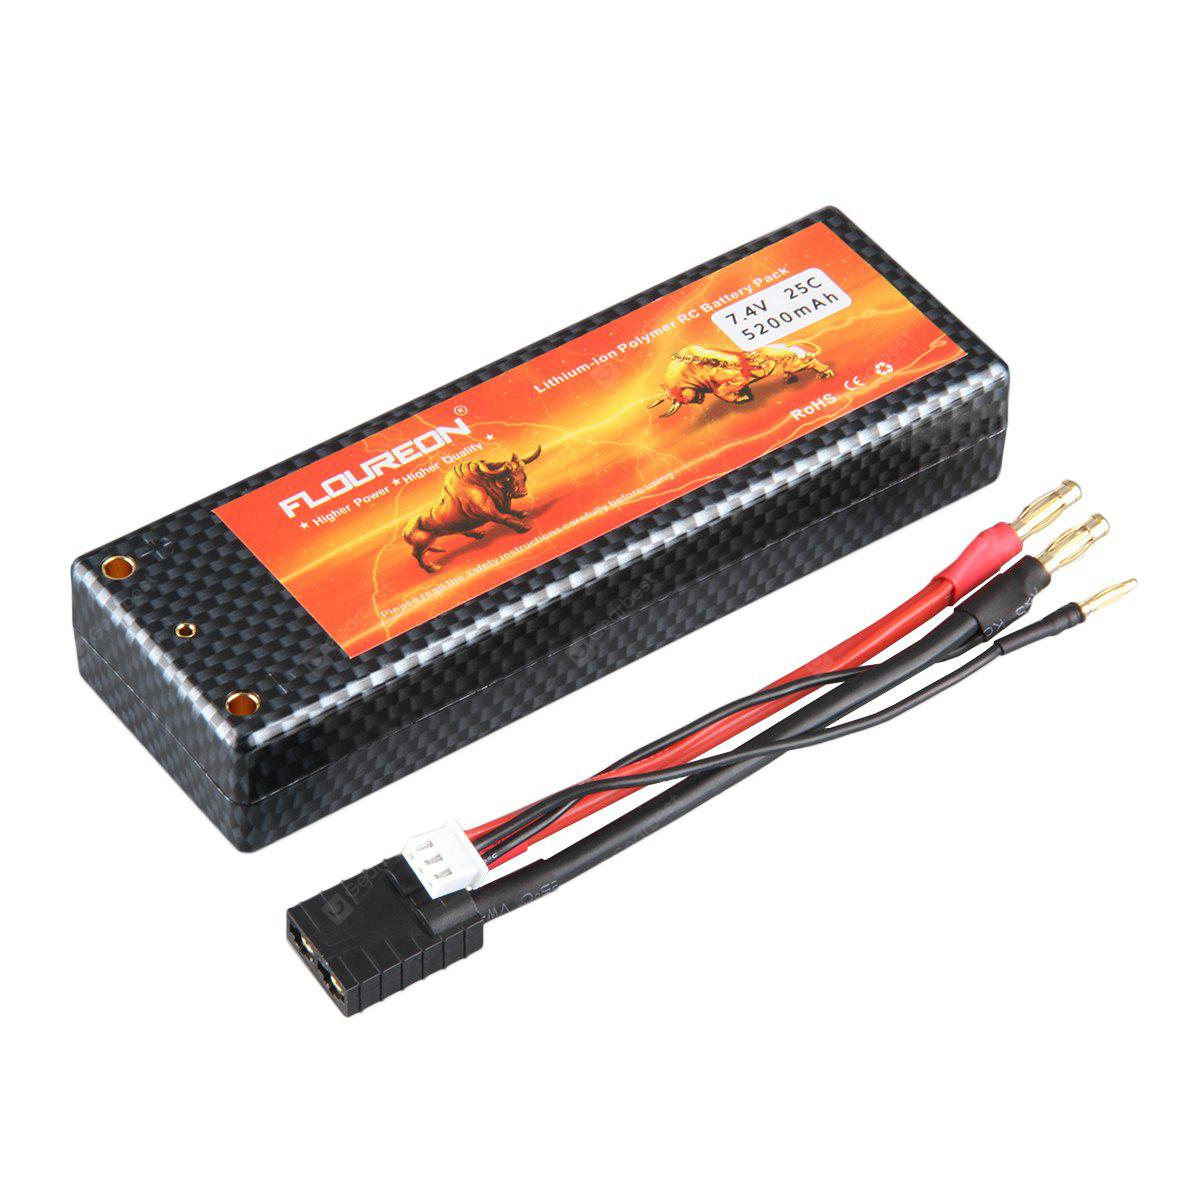 Floureon 2s 74v 5200mah 25c With Traxxas Plug Lipo Battery Pack For Bundle 10pcs Steam Wallet Idr 400000 Rc Evader Bx Car Truck Truggy Airplane Uav Drone Fpv 2878 Free